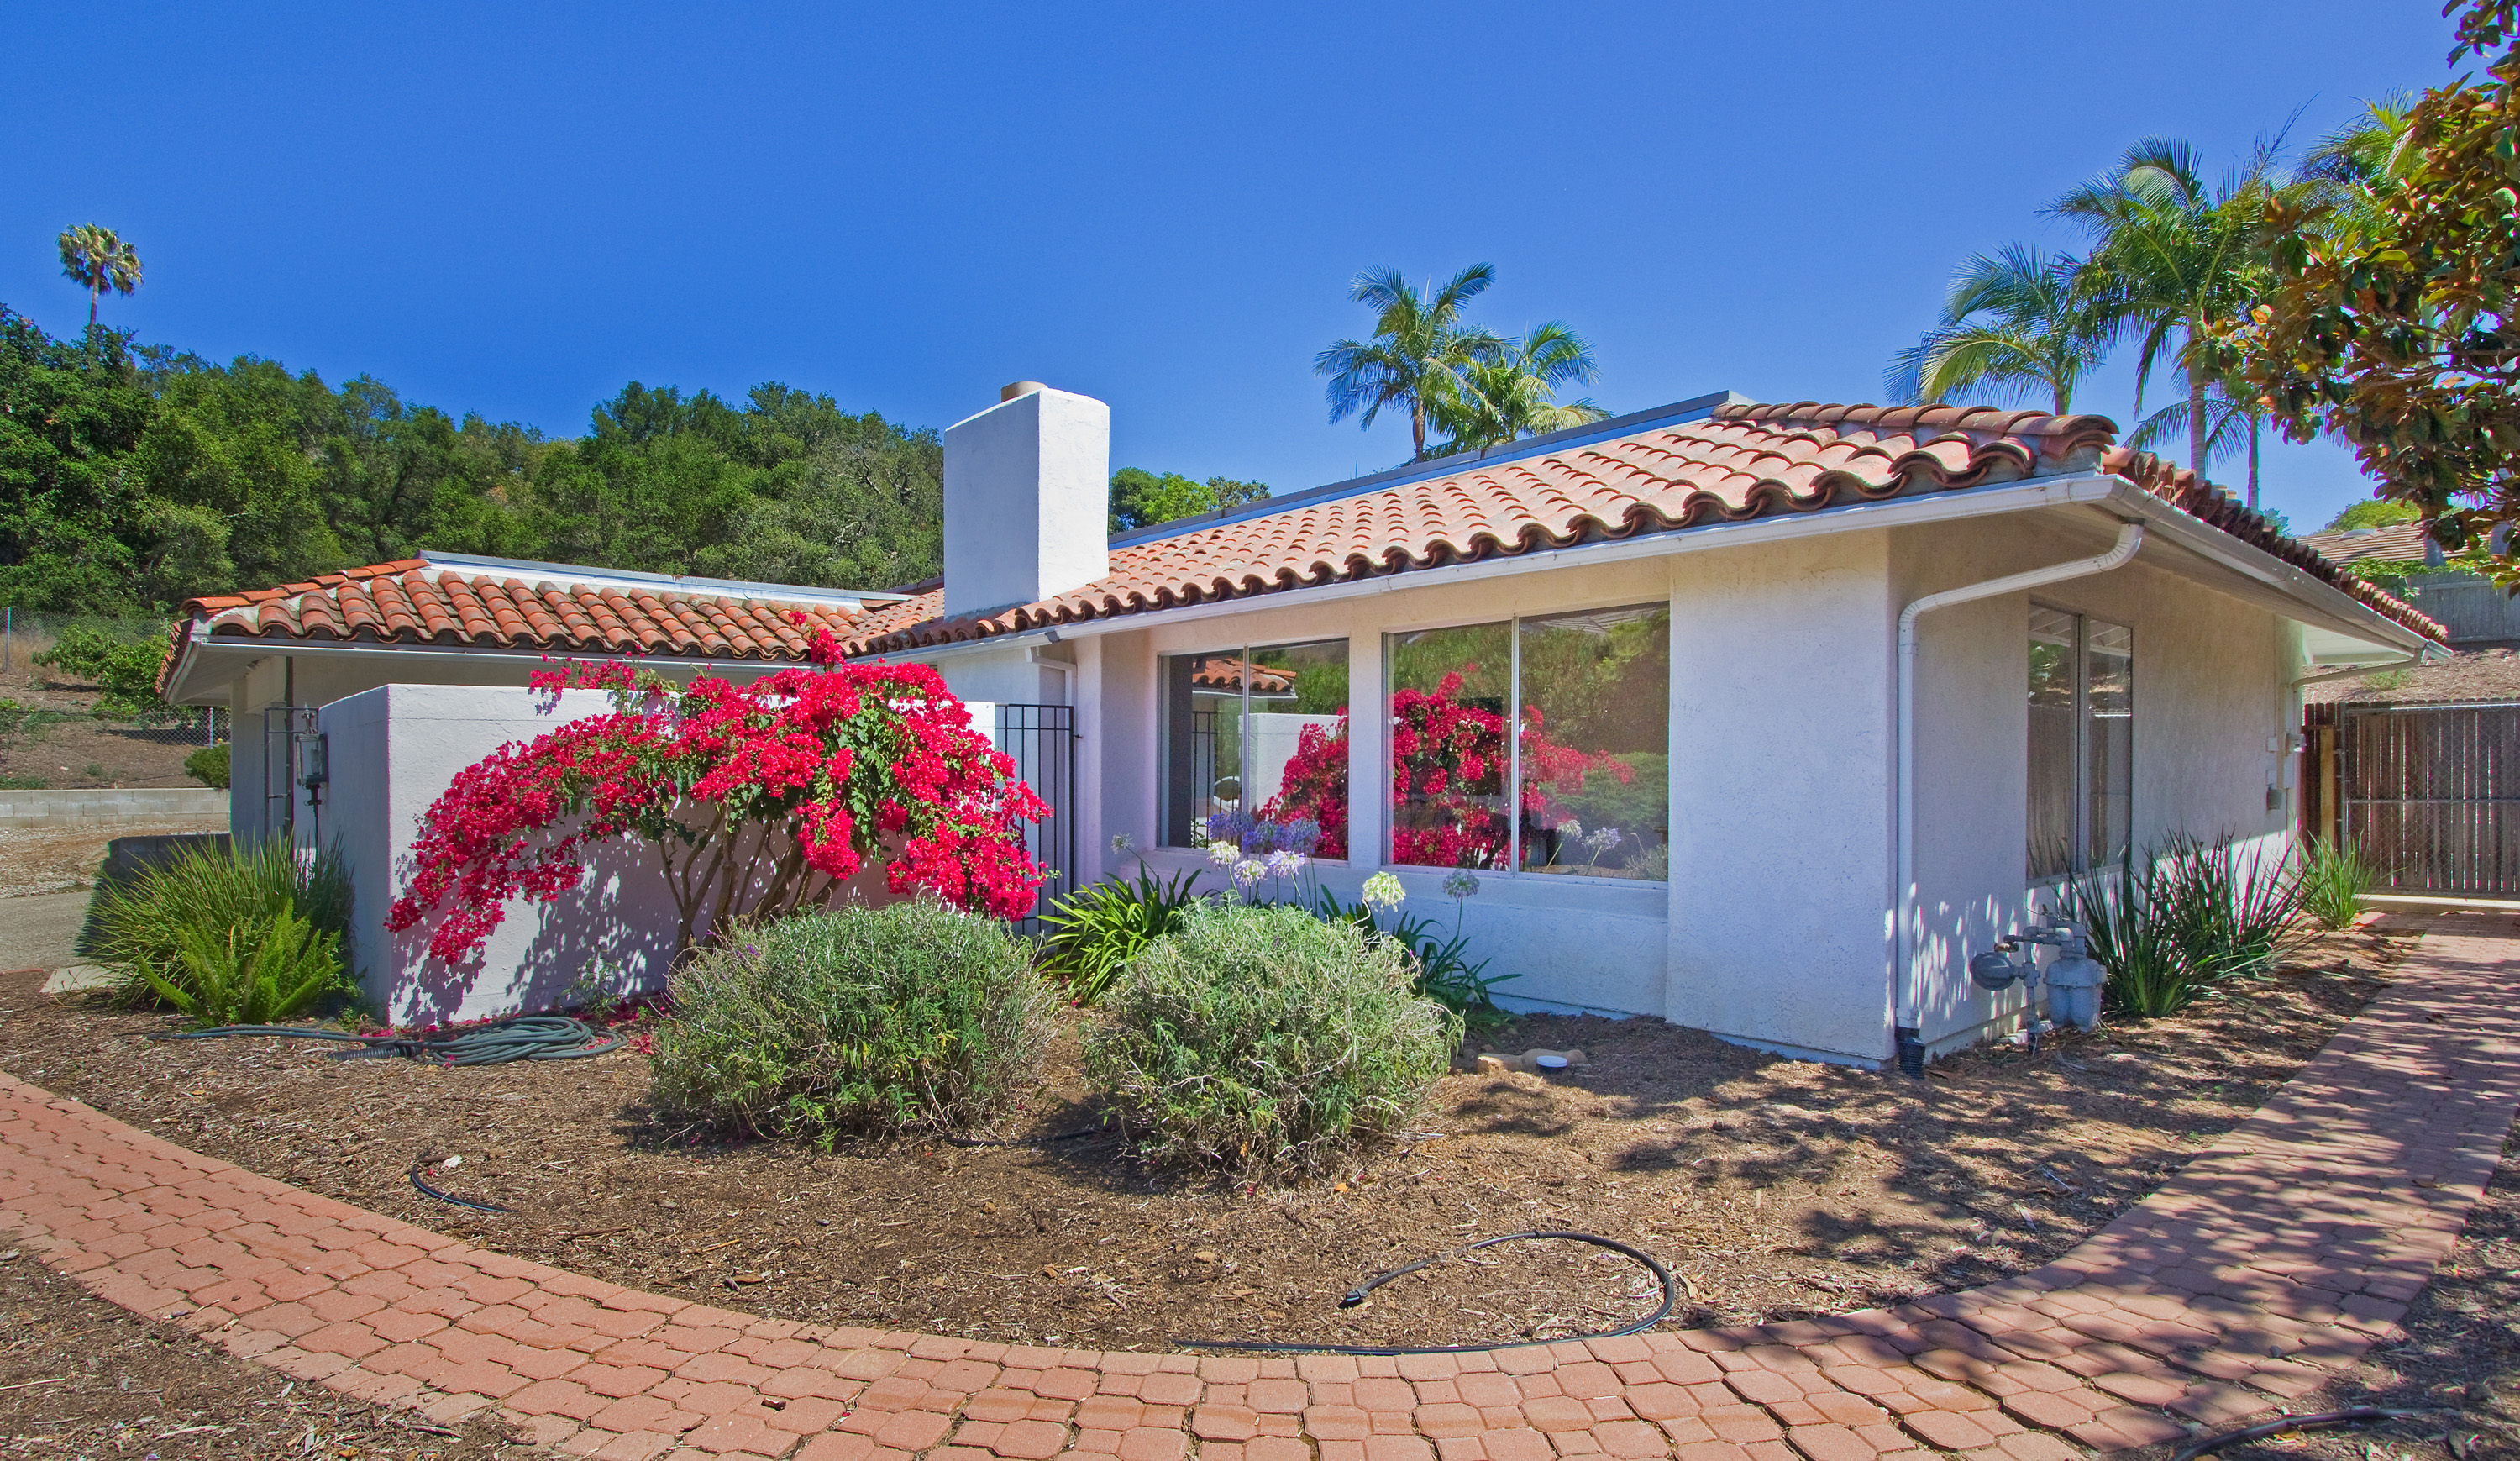 Home for sale in the santa barbara foothills real estate for Santa barbara new homes